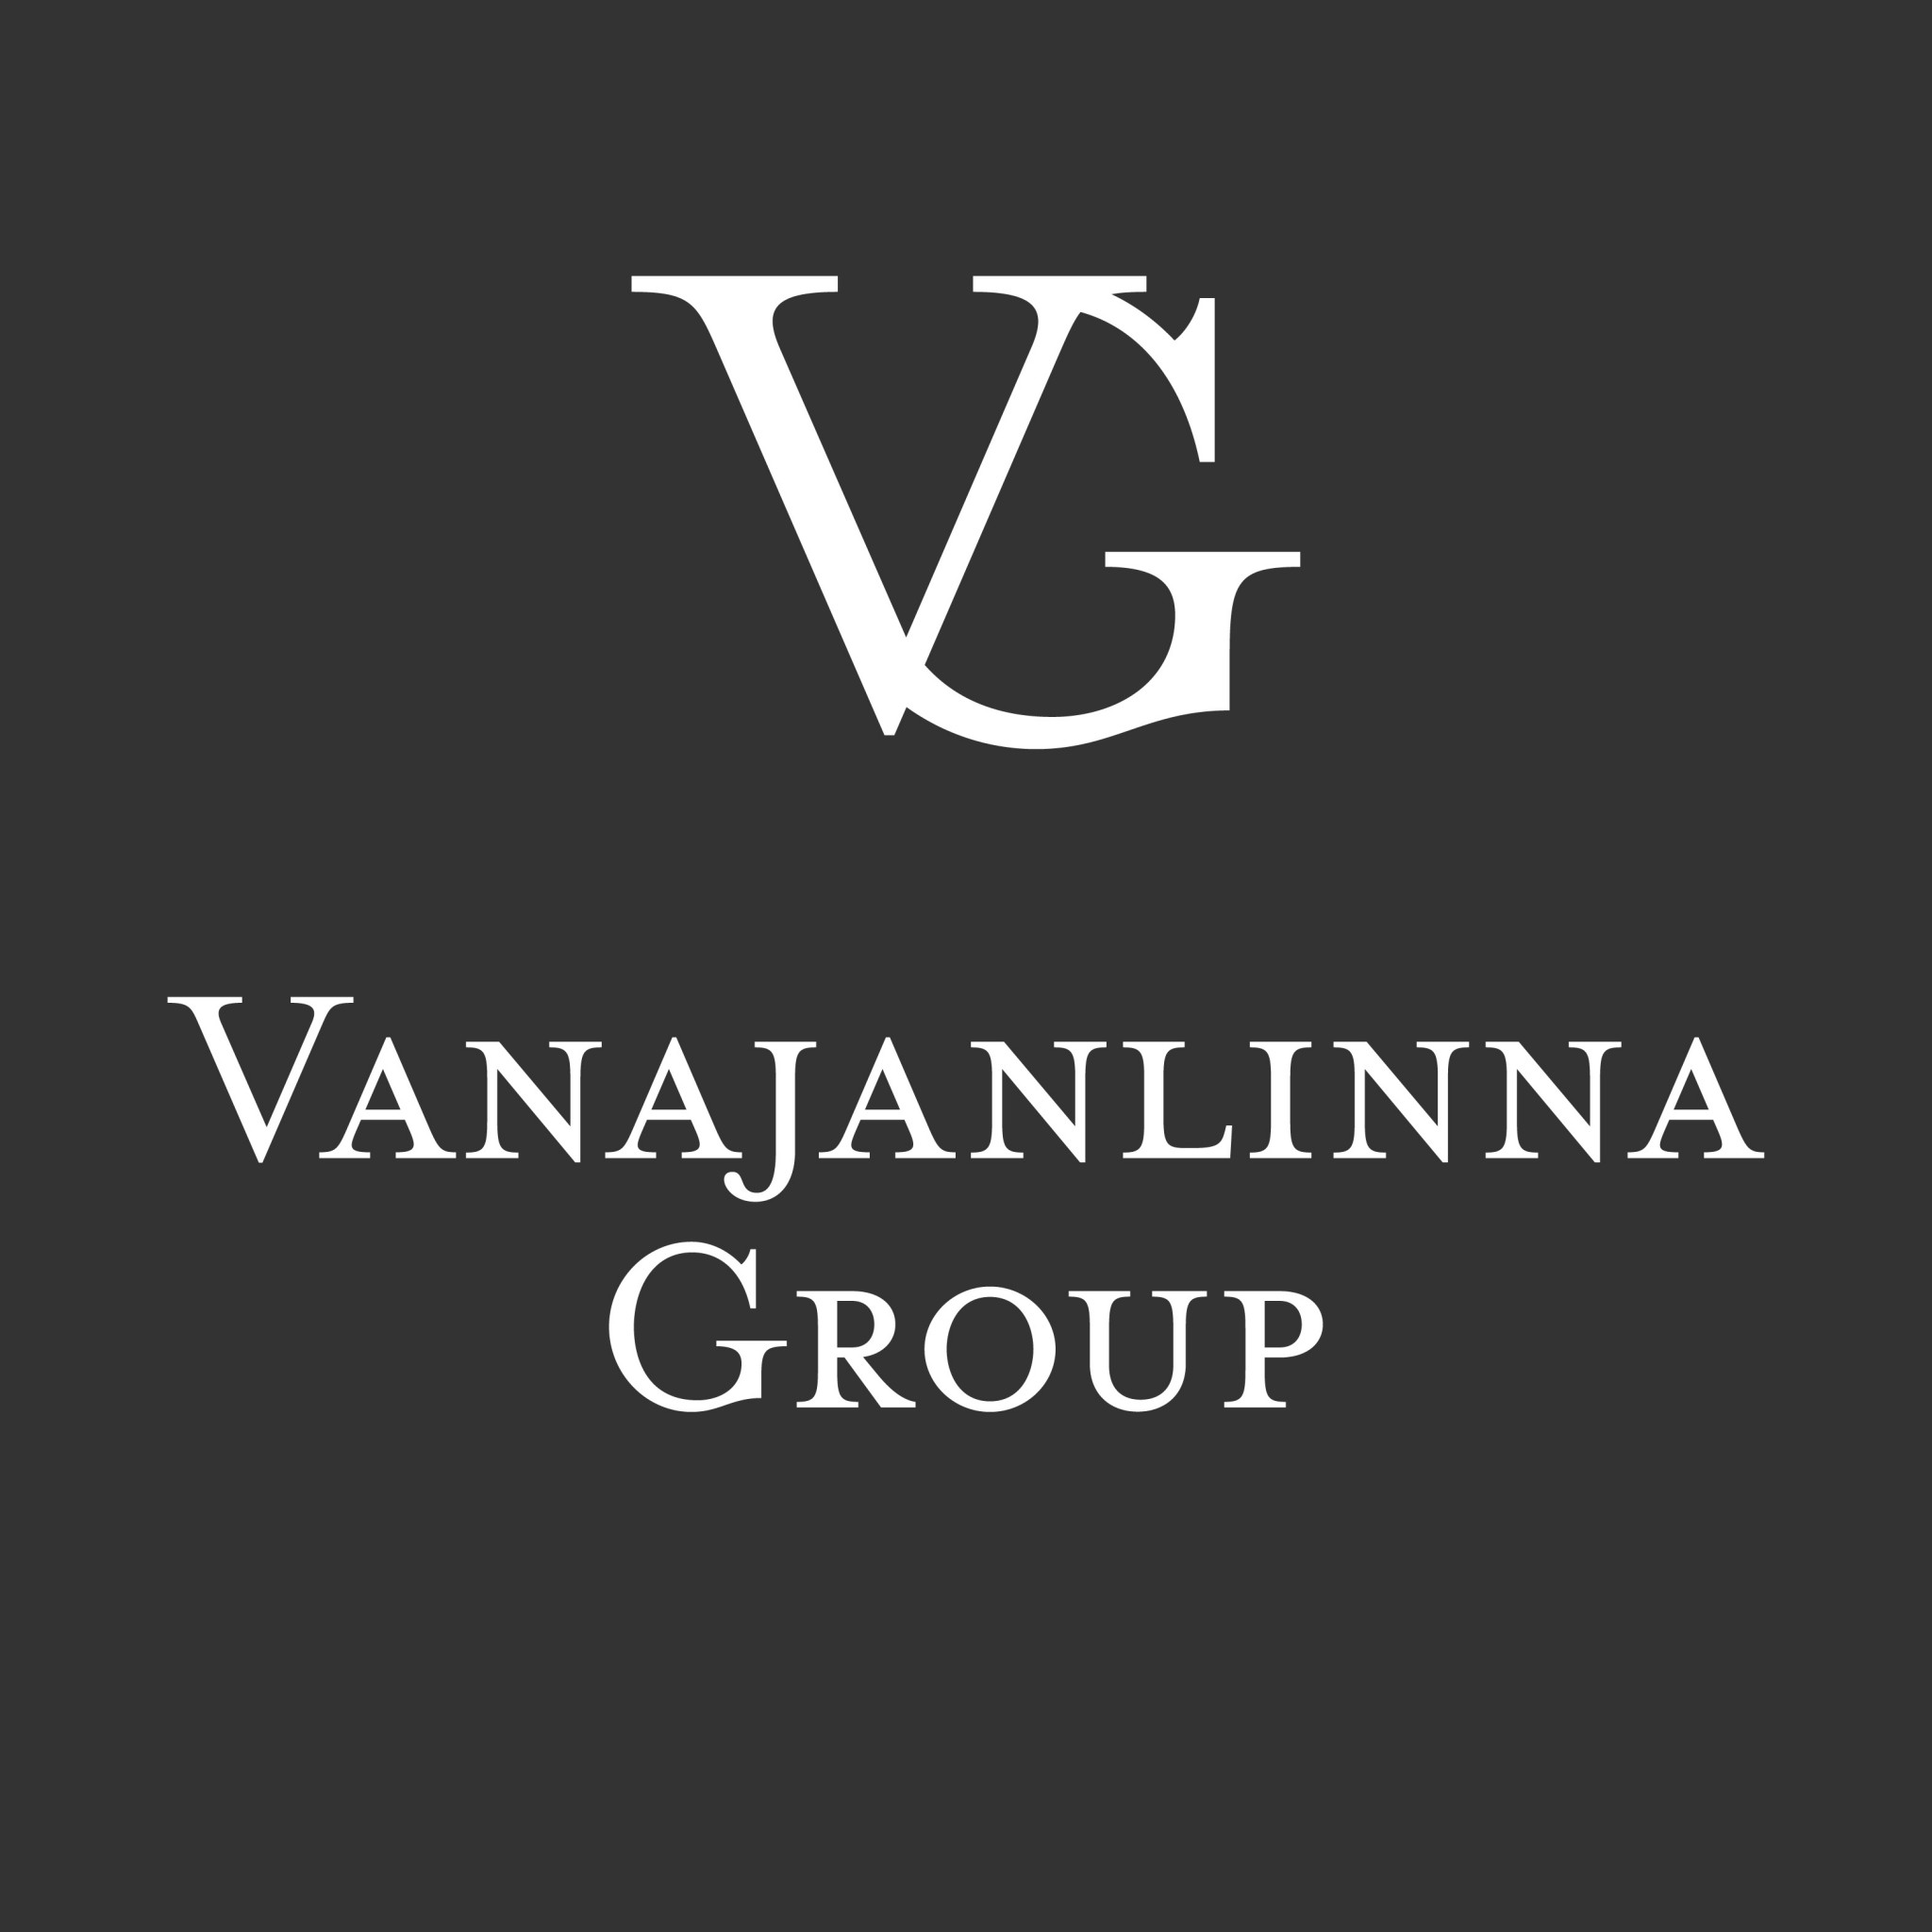 Vanajanlinna Group